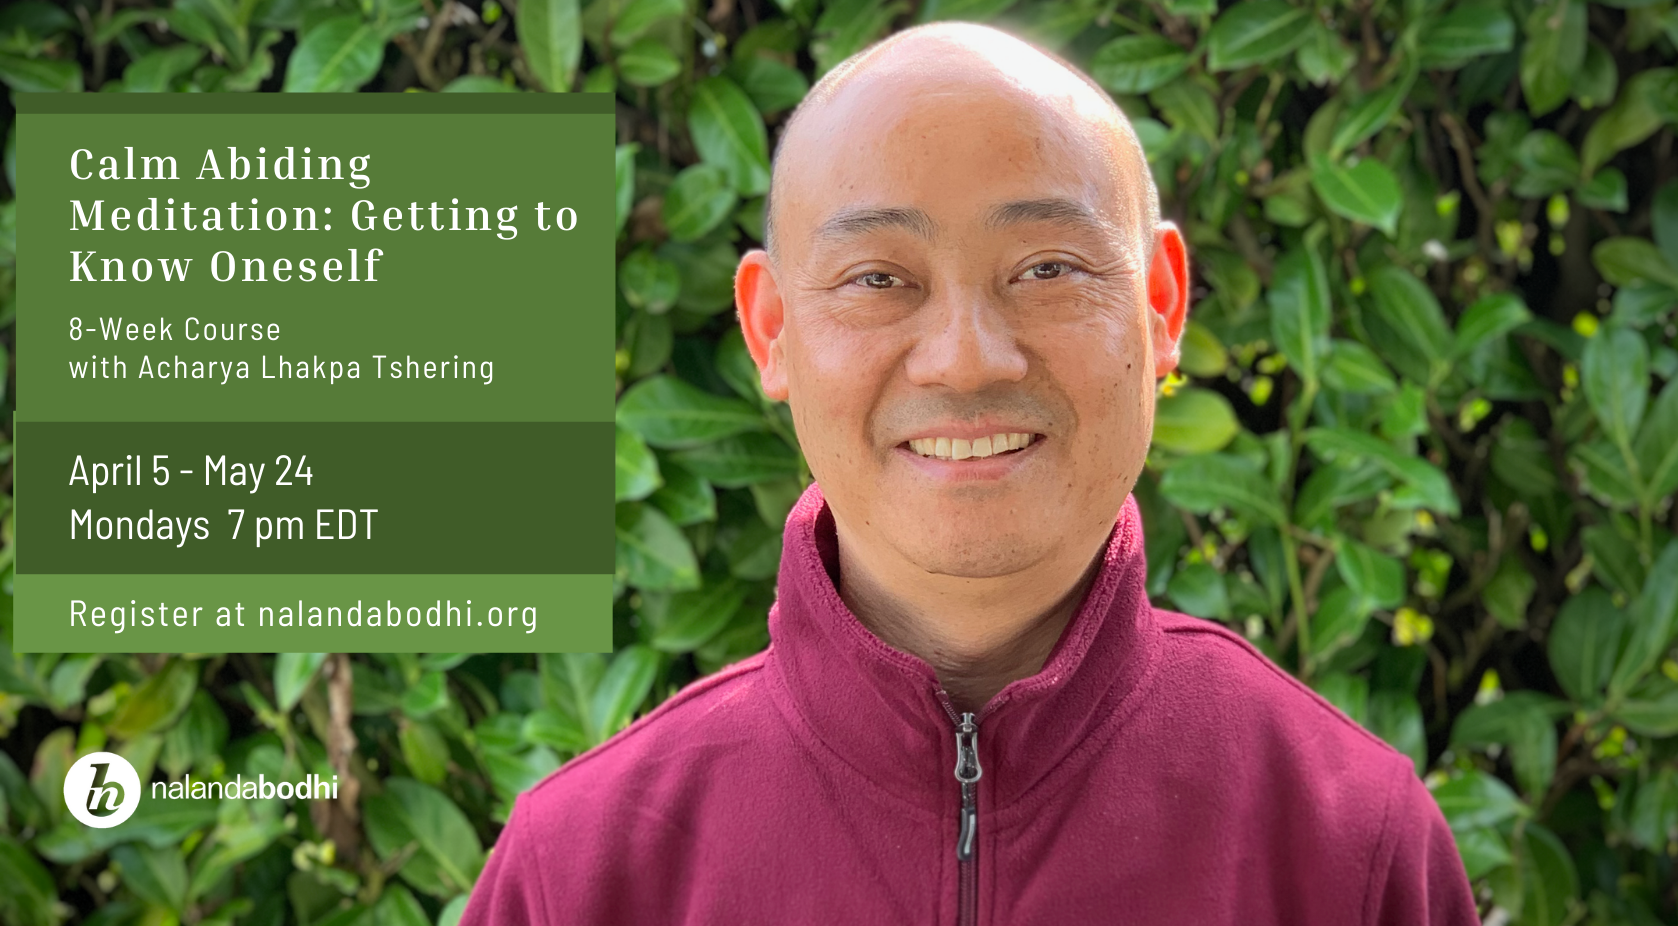 Calm Abiding Meditation Course: Getting to Know Oneself with Acharya Lhakpa Tshering